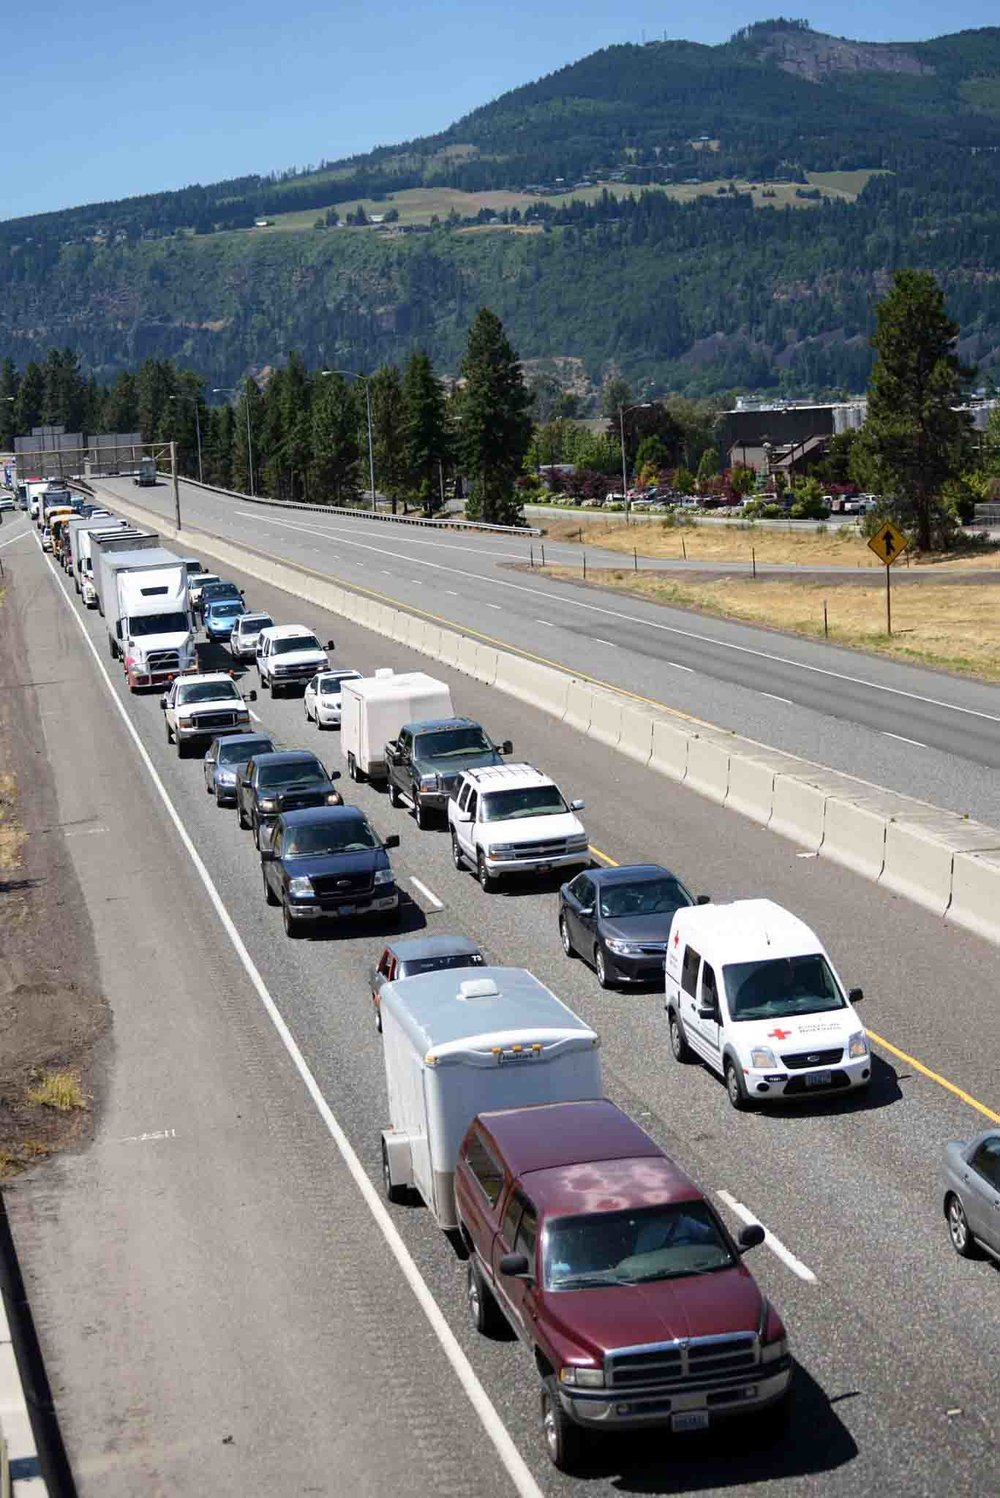 June 3, 2016 - the freeway closed after the derailment and it took six hours to get from Hood River to Mosier, a six minute commute.         Photo: Patrick Mulville, Hood River News